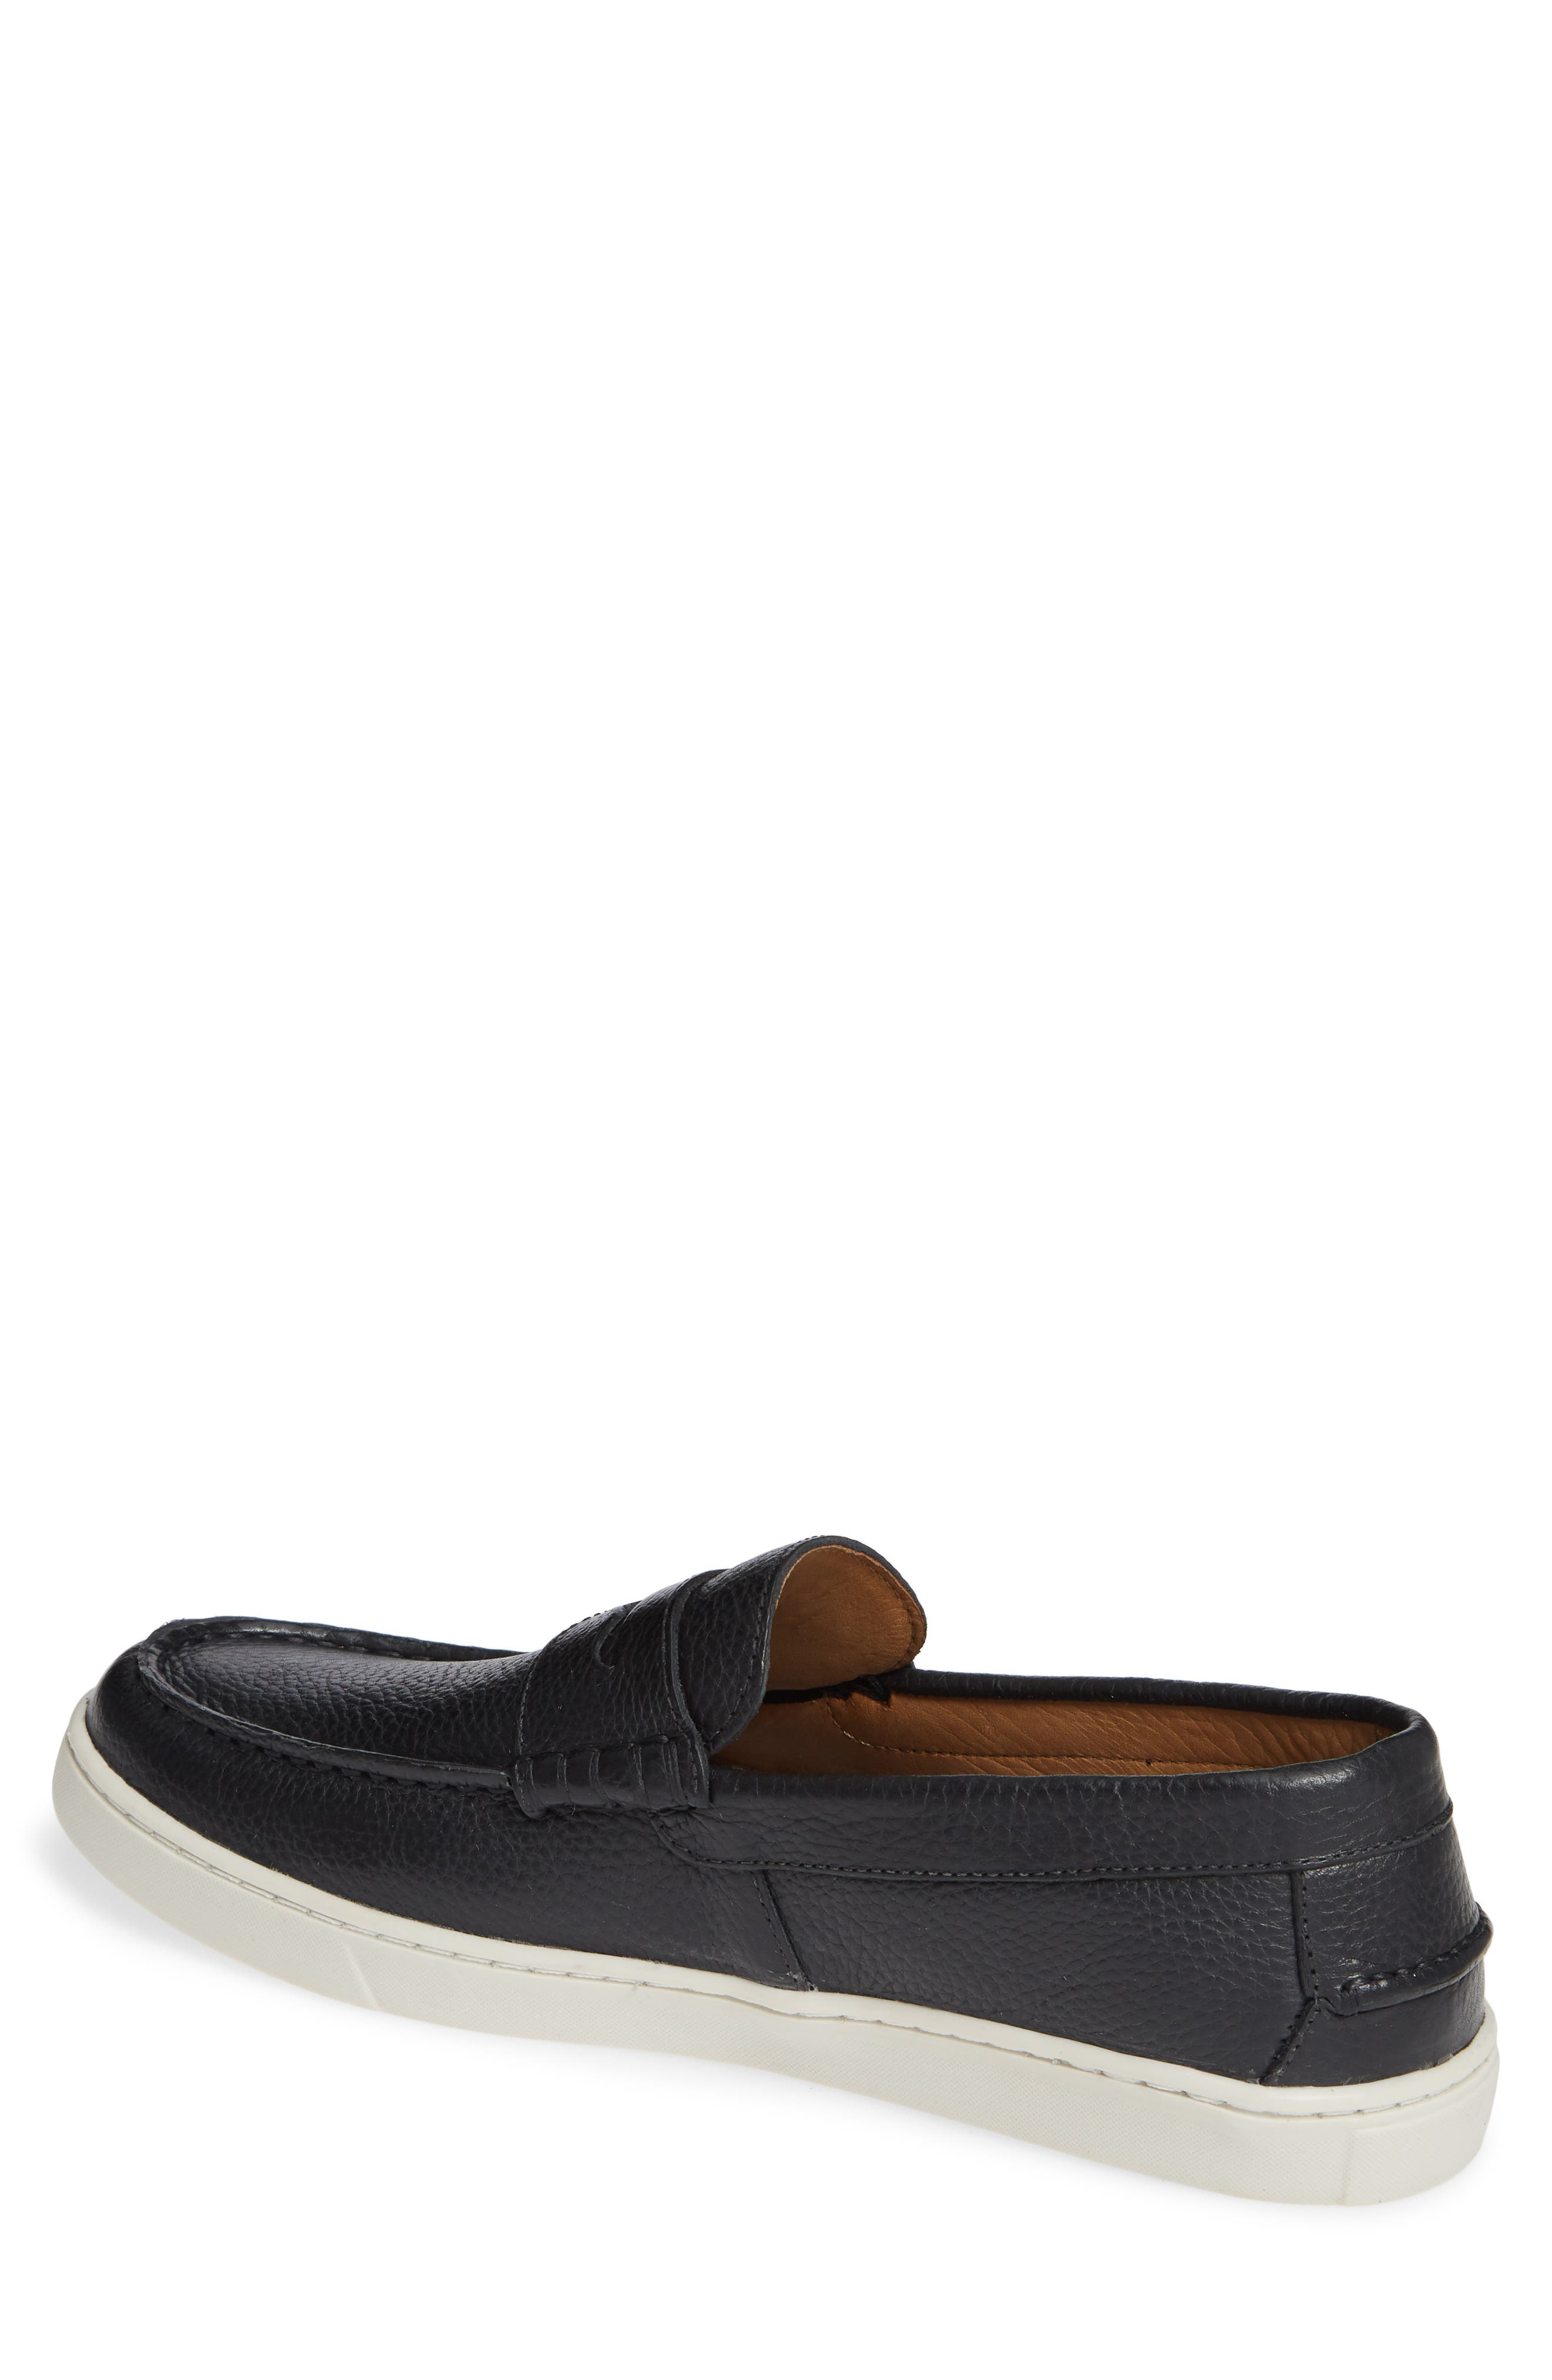 Chelan Penny Loafer,                             Alternate thumbnail 2, color,                             BLACK LEATHER